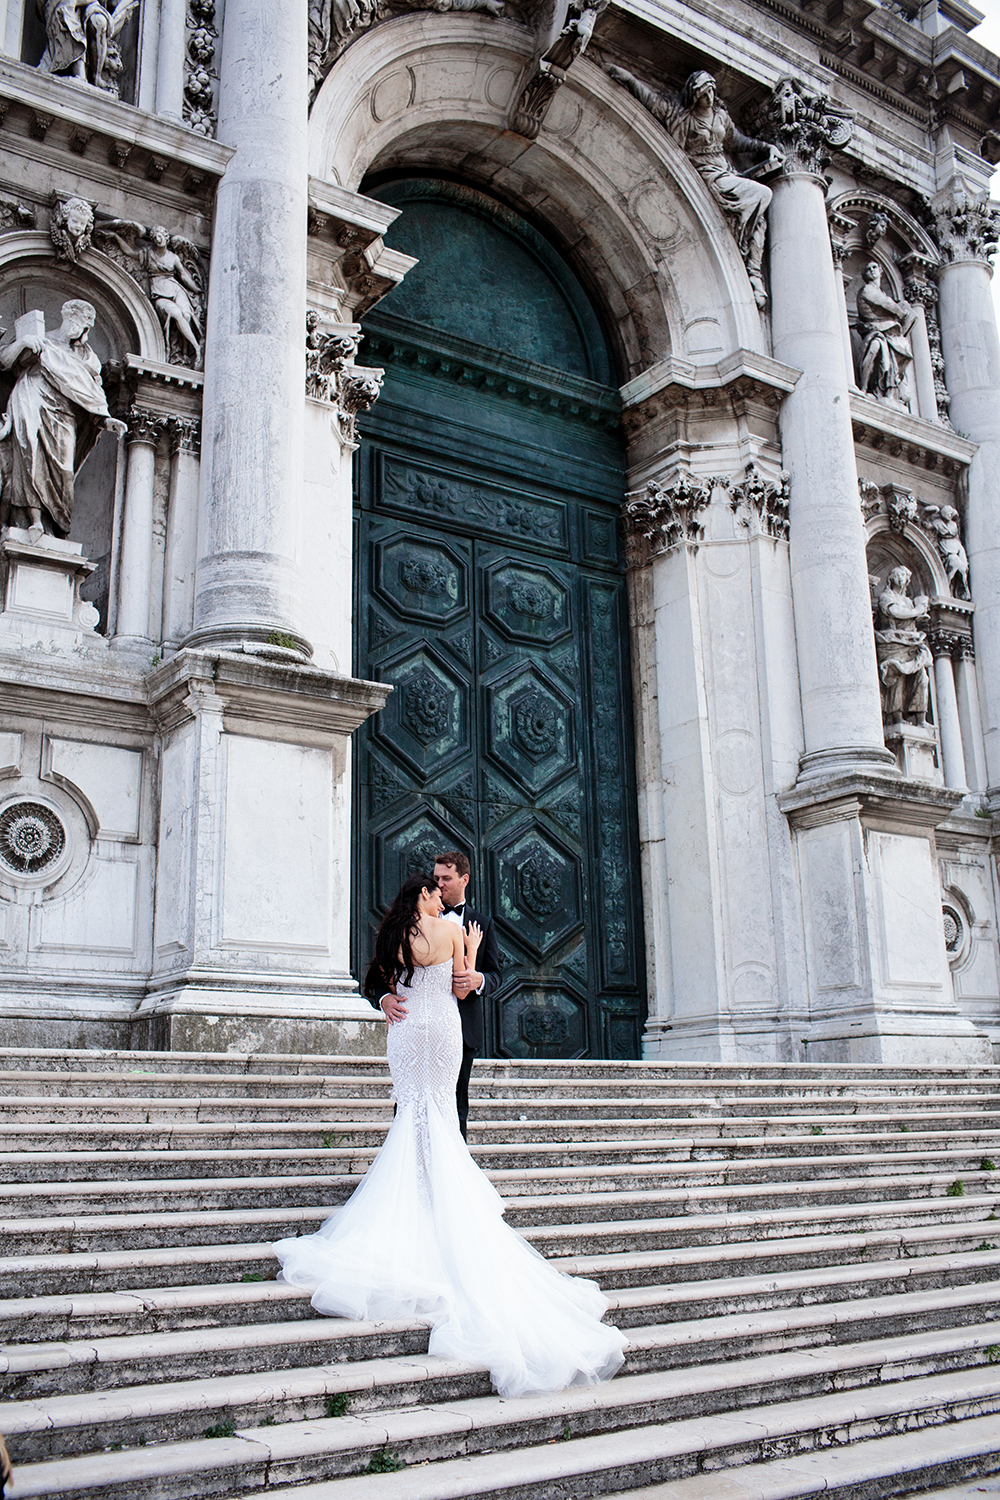 J&J wedding in Venice1280.jpg